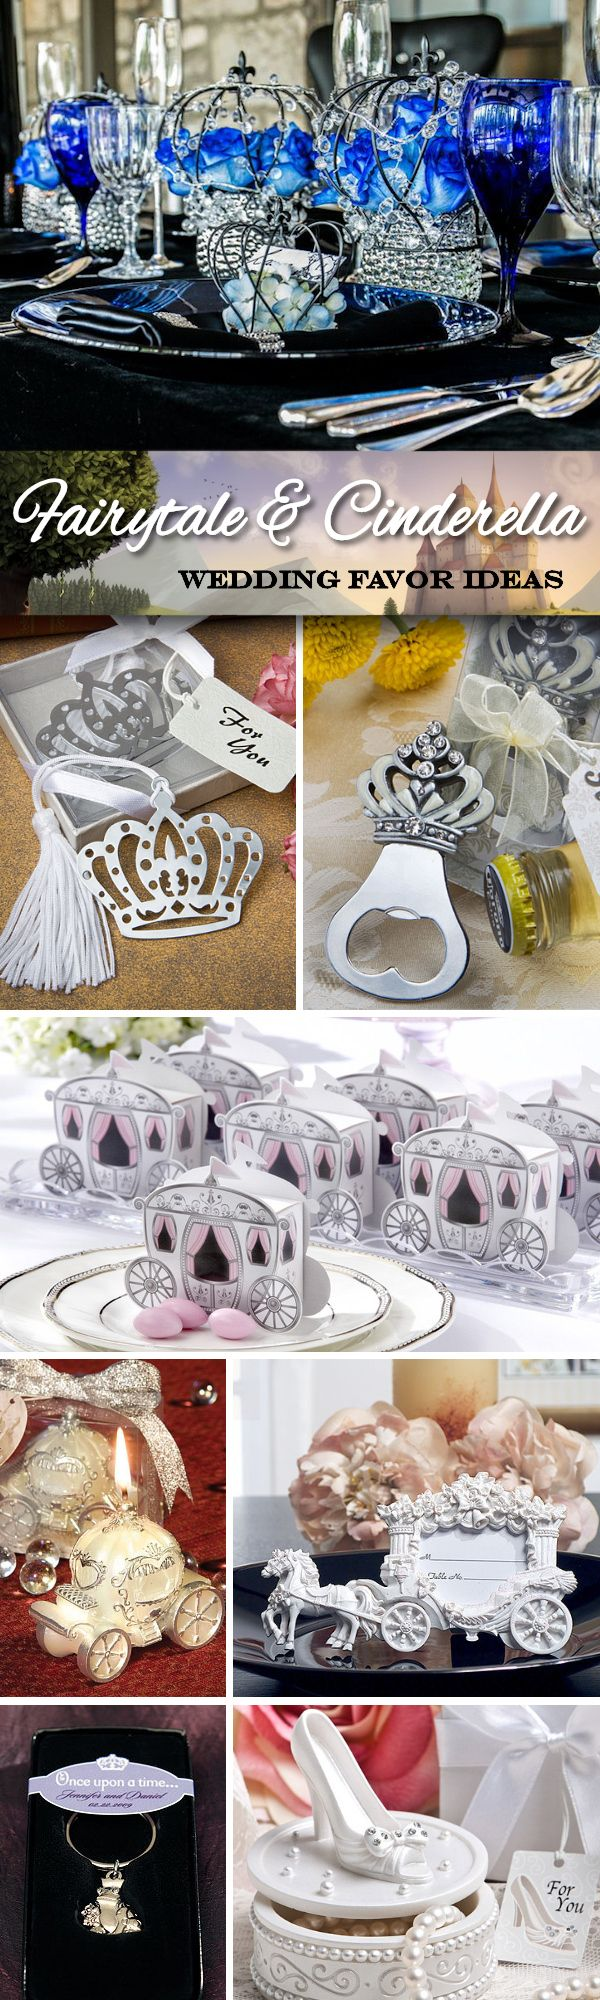 Having A Fairytale Or Cinderella Themed Wedding Check Out These